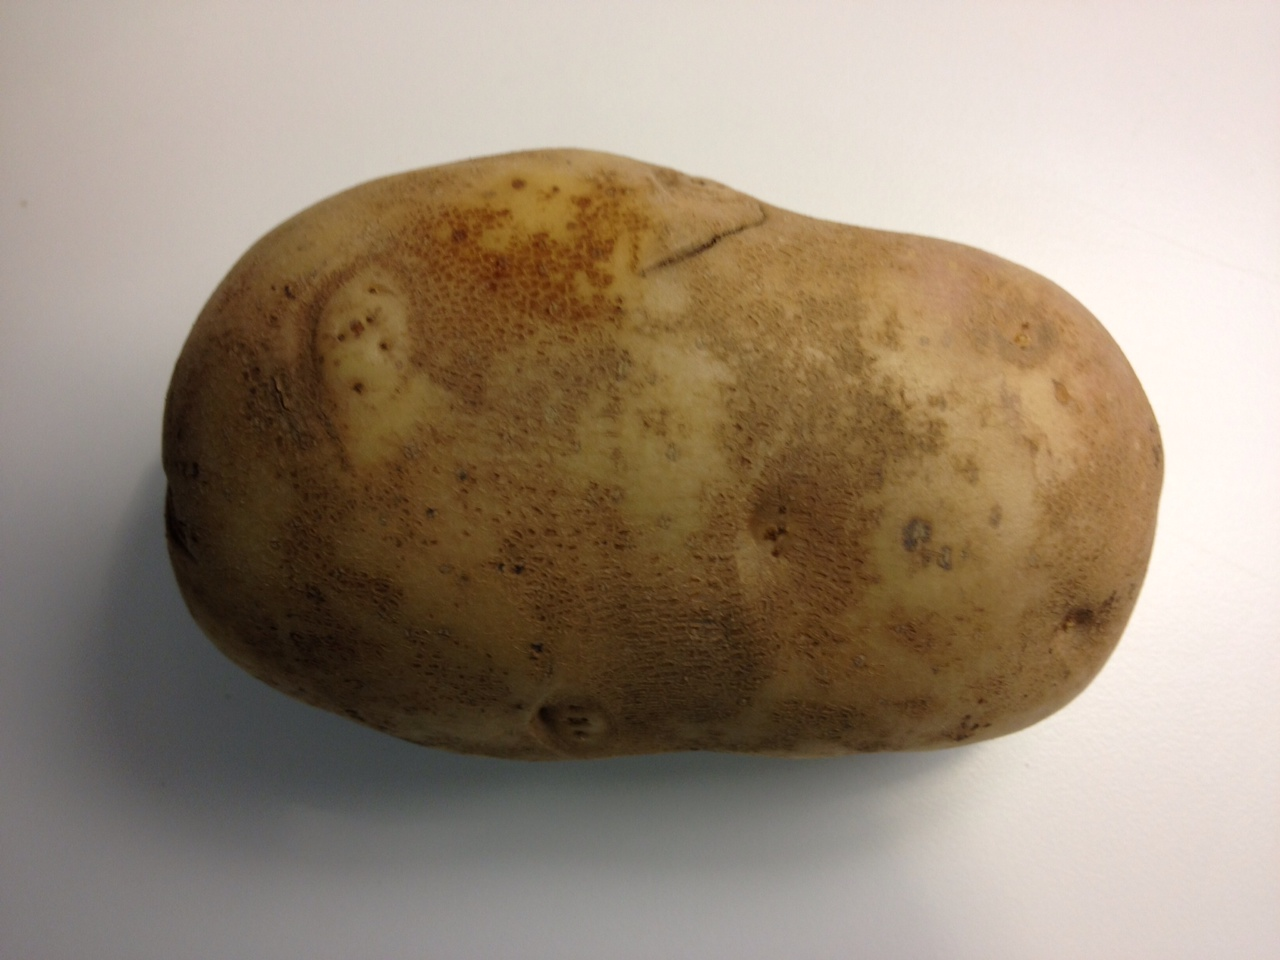 Behold the evil potato.